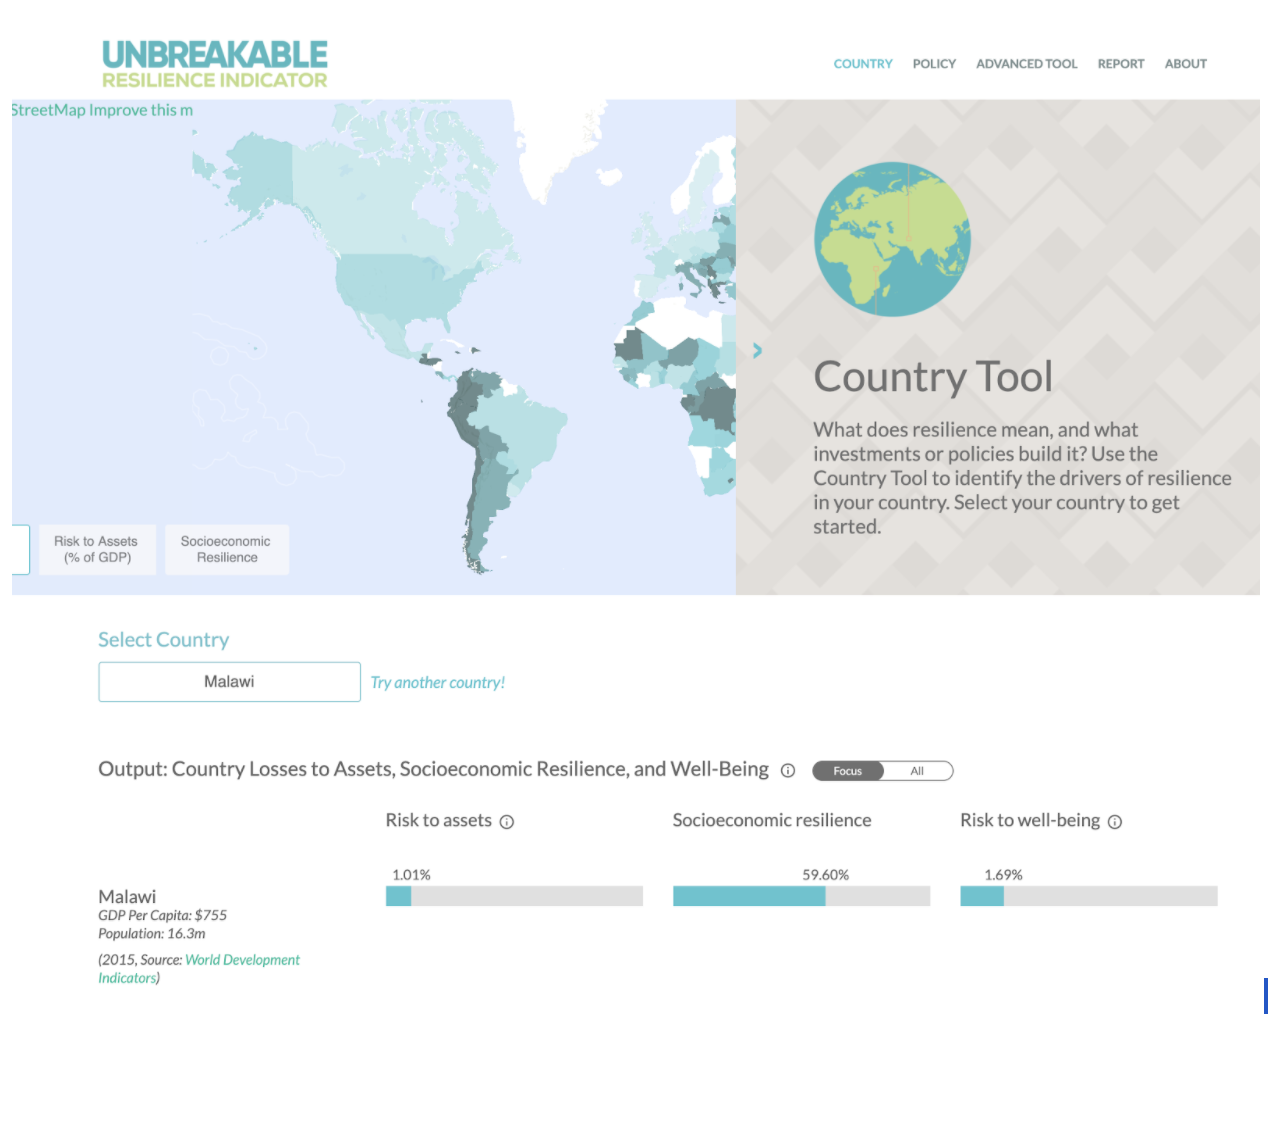 Landing page image of the World Bank country tool showing losses to assets, socioeconomic resilience and well being.